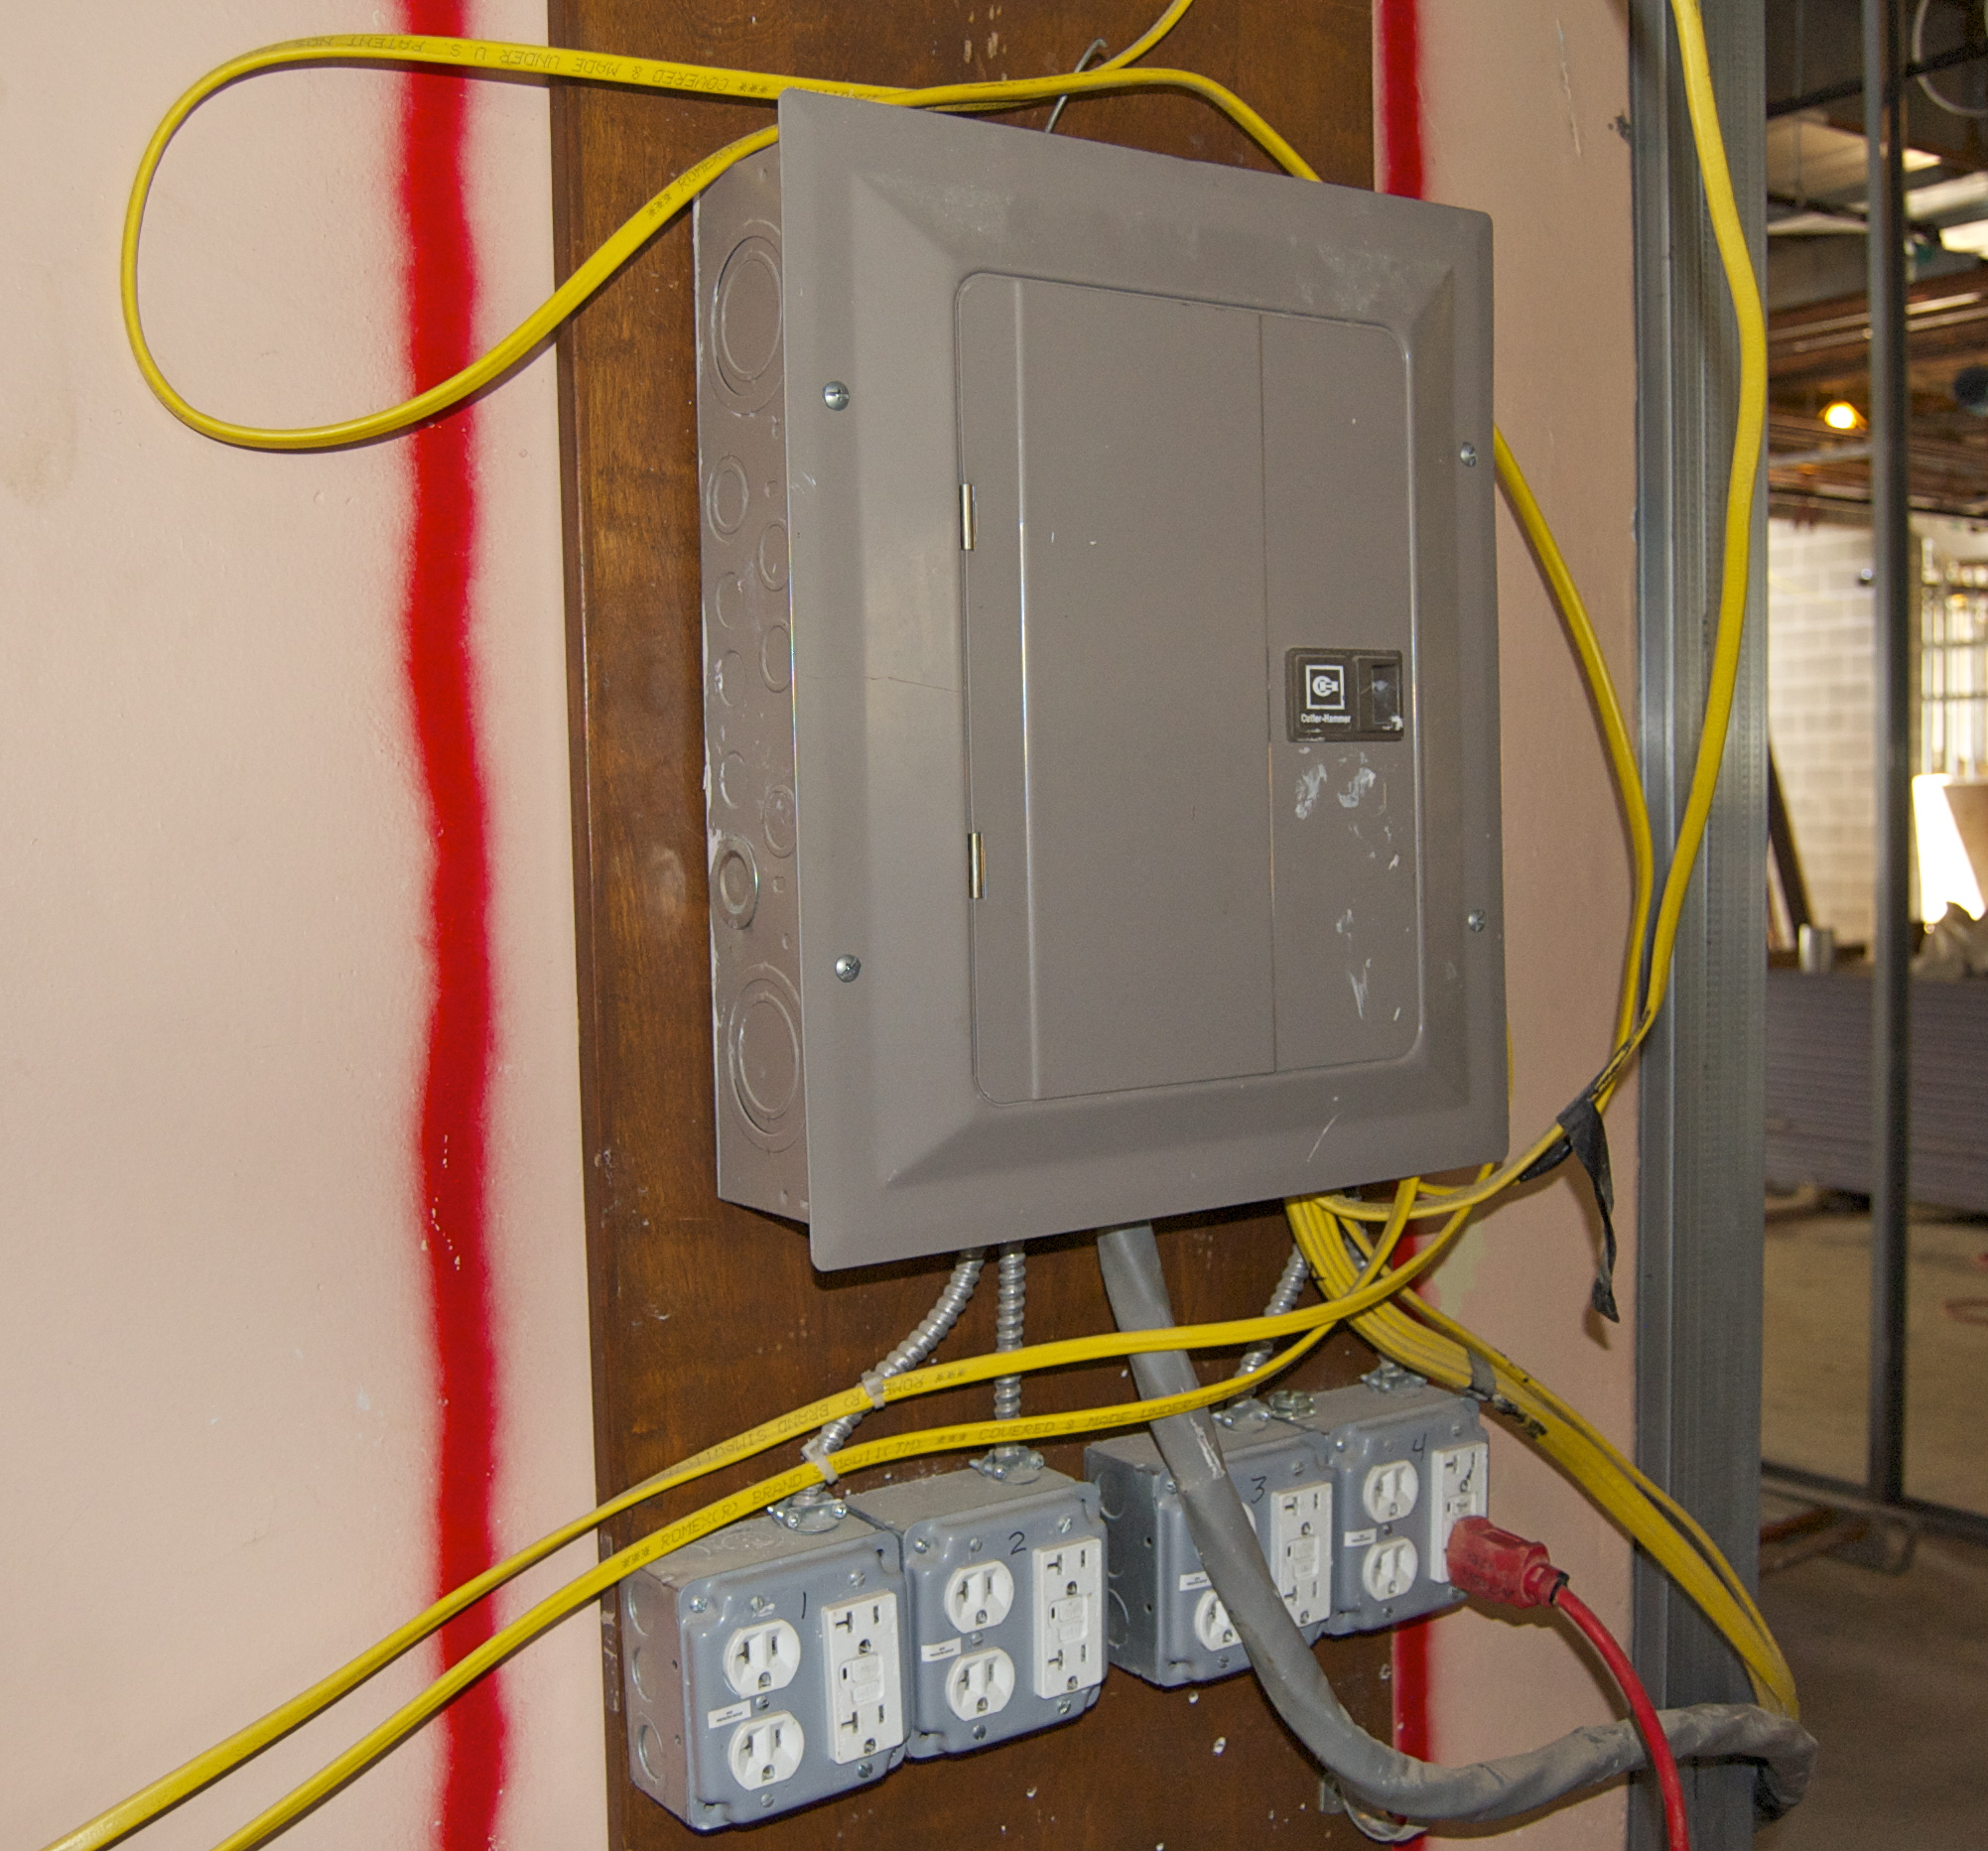 Elcosh Electronic Library Of Construction Occupational Safety And Fault Circuit Interrupter Receptacles Wwwdoityourselfhelpcom This Electrical Box On The Site Has Ground Interrupters All Outlets To Be Used With Portable Equipment